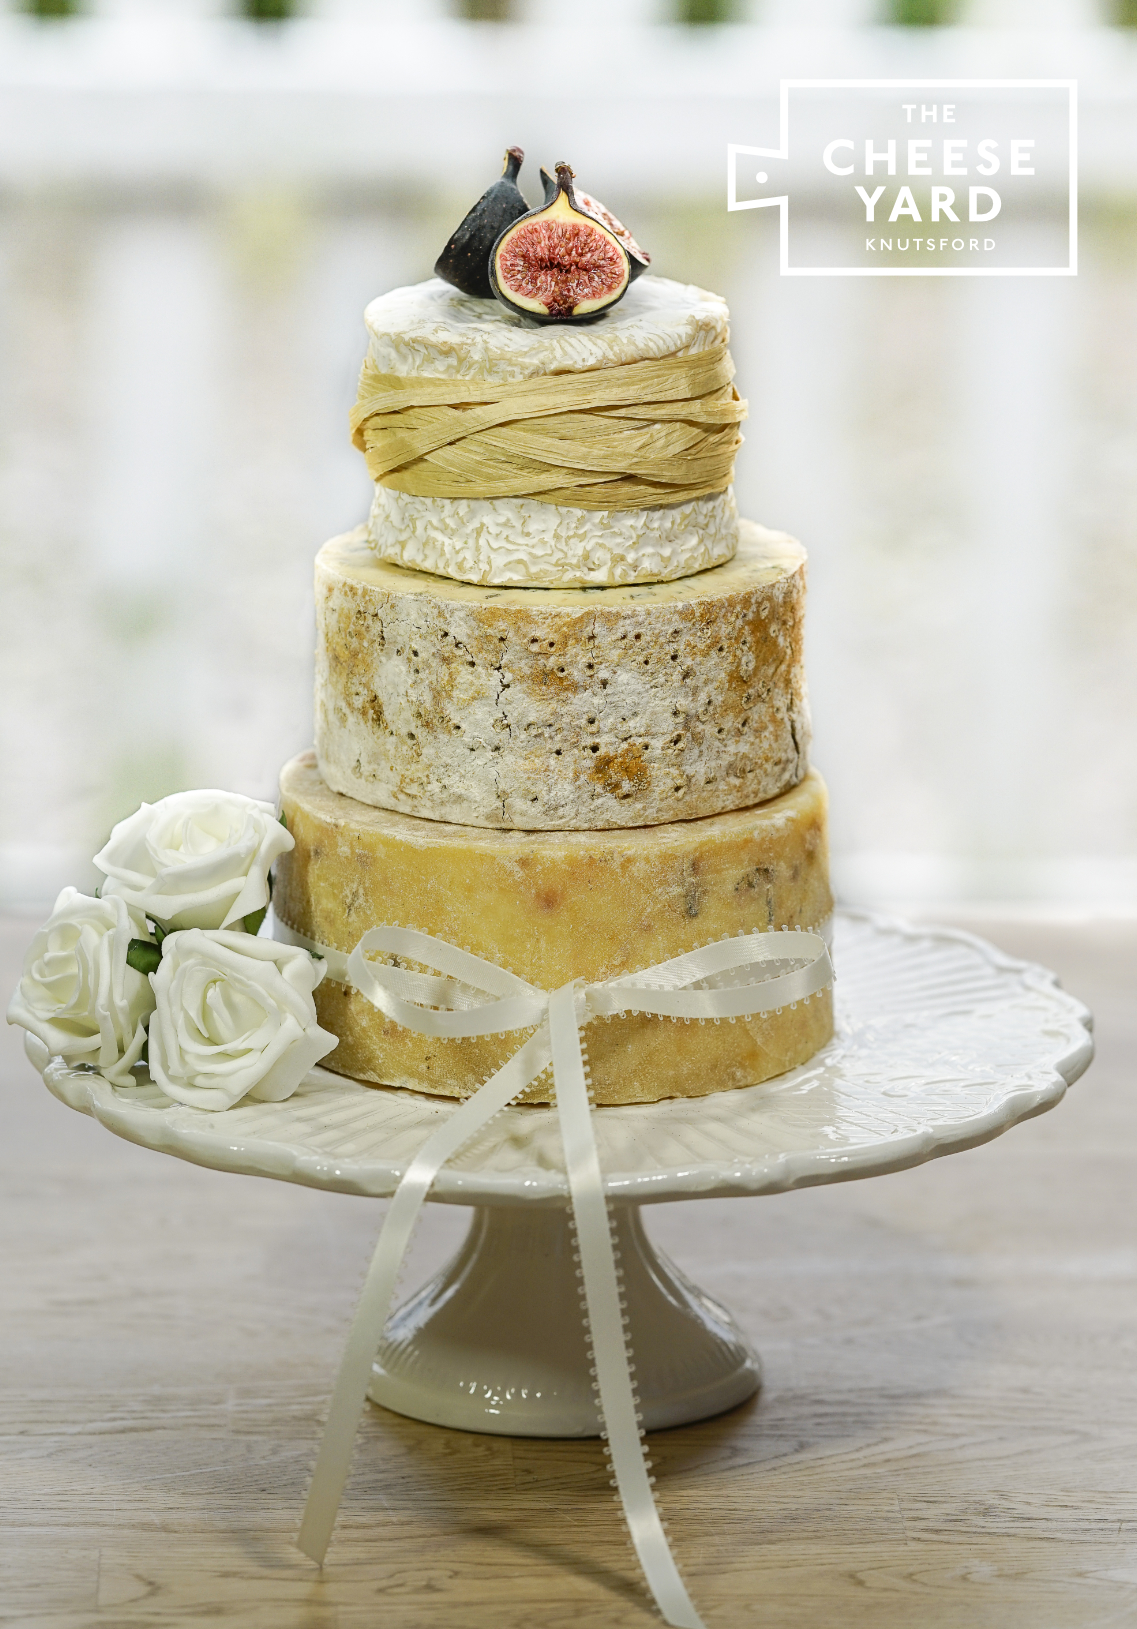 Wedding Cakes — The Cheese Yard | Cheese Shop, Café and Deli